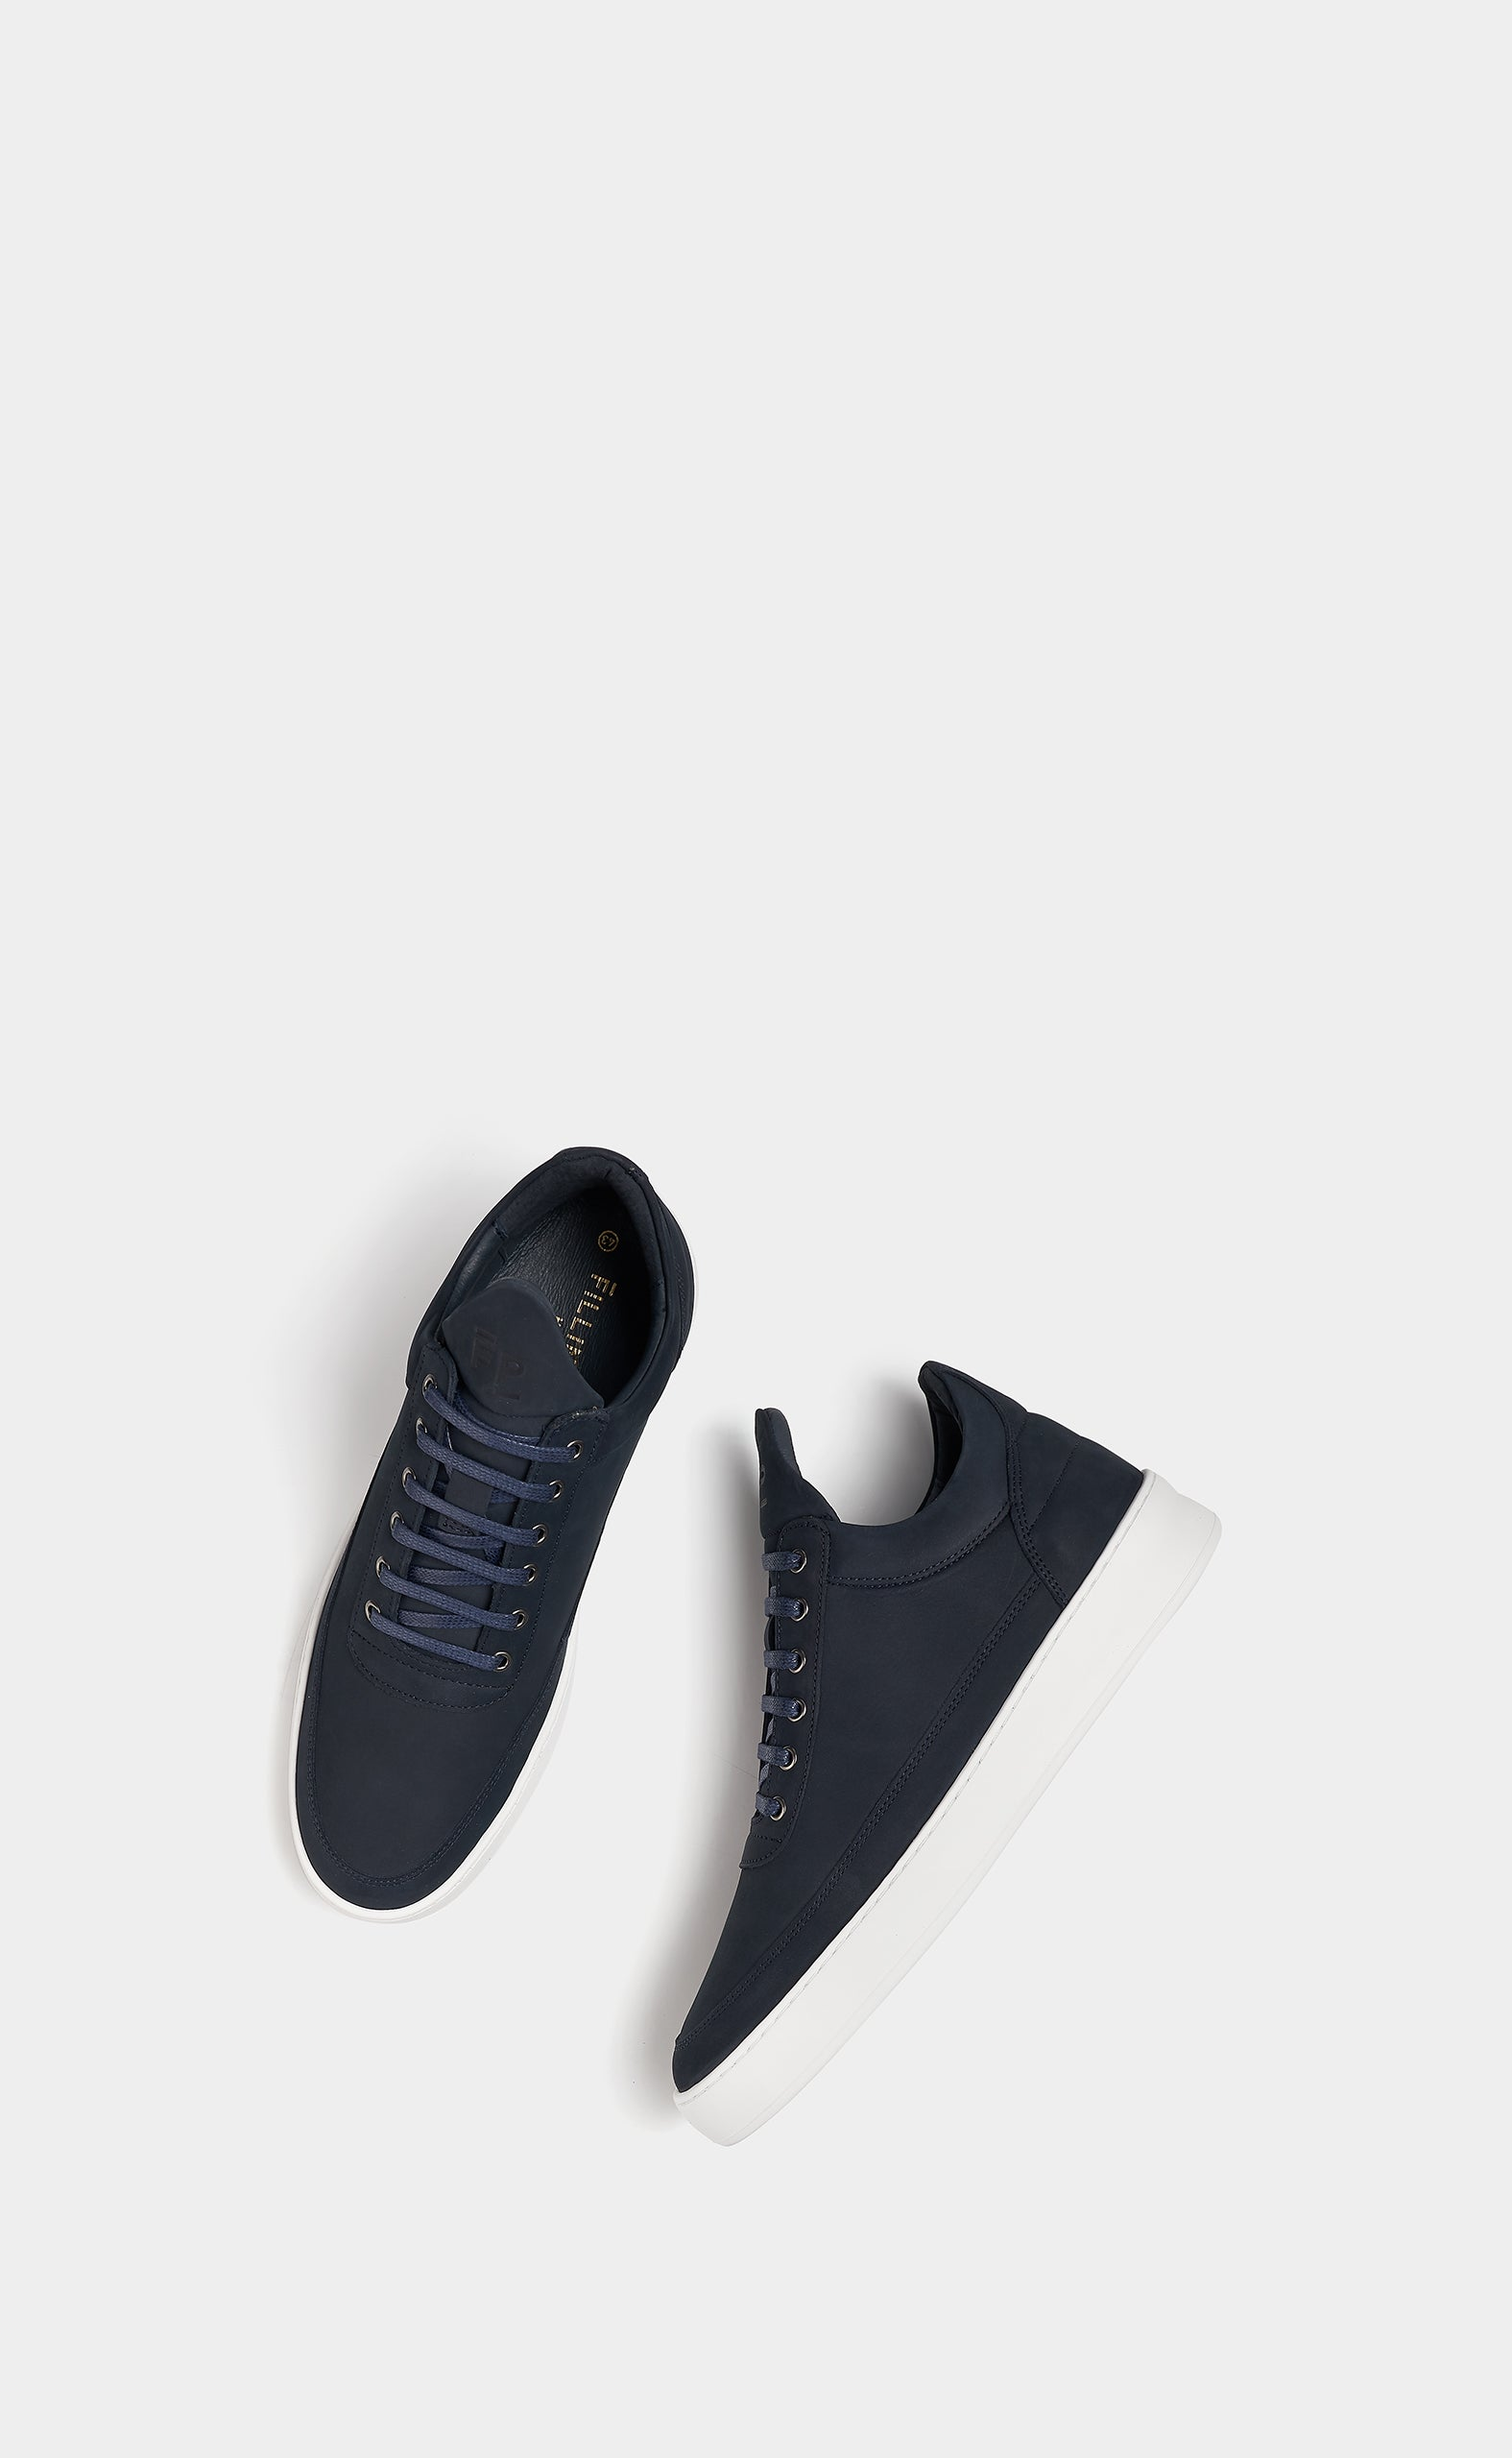 Low Top Plain Lane Nubuck Navy Blue - men